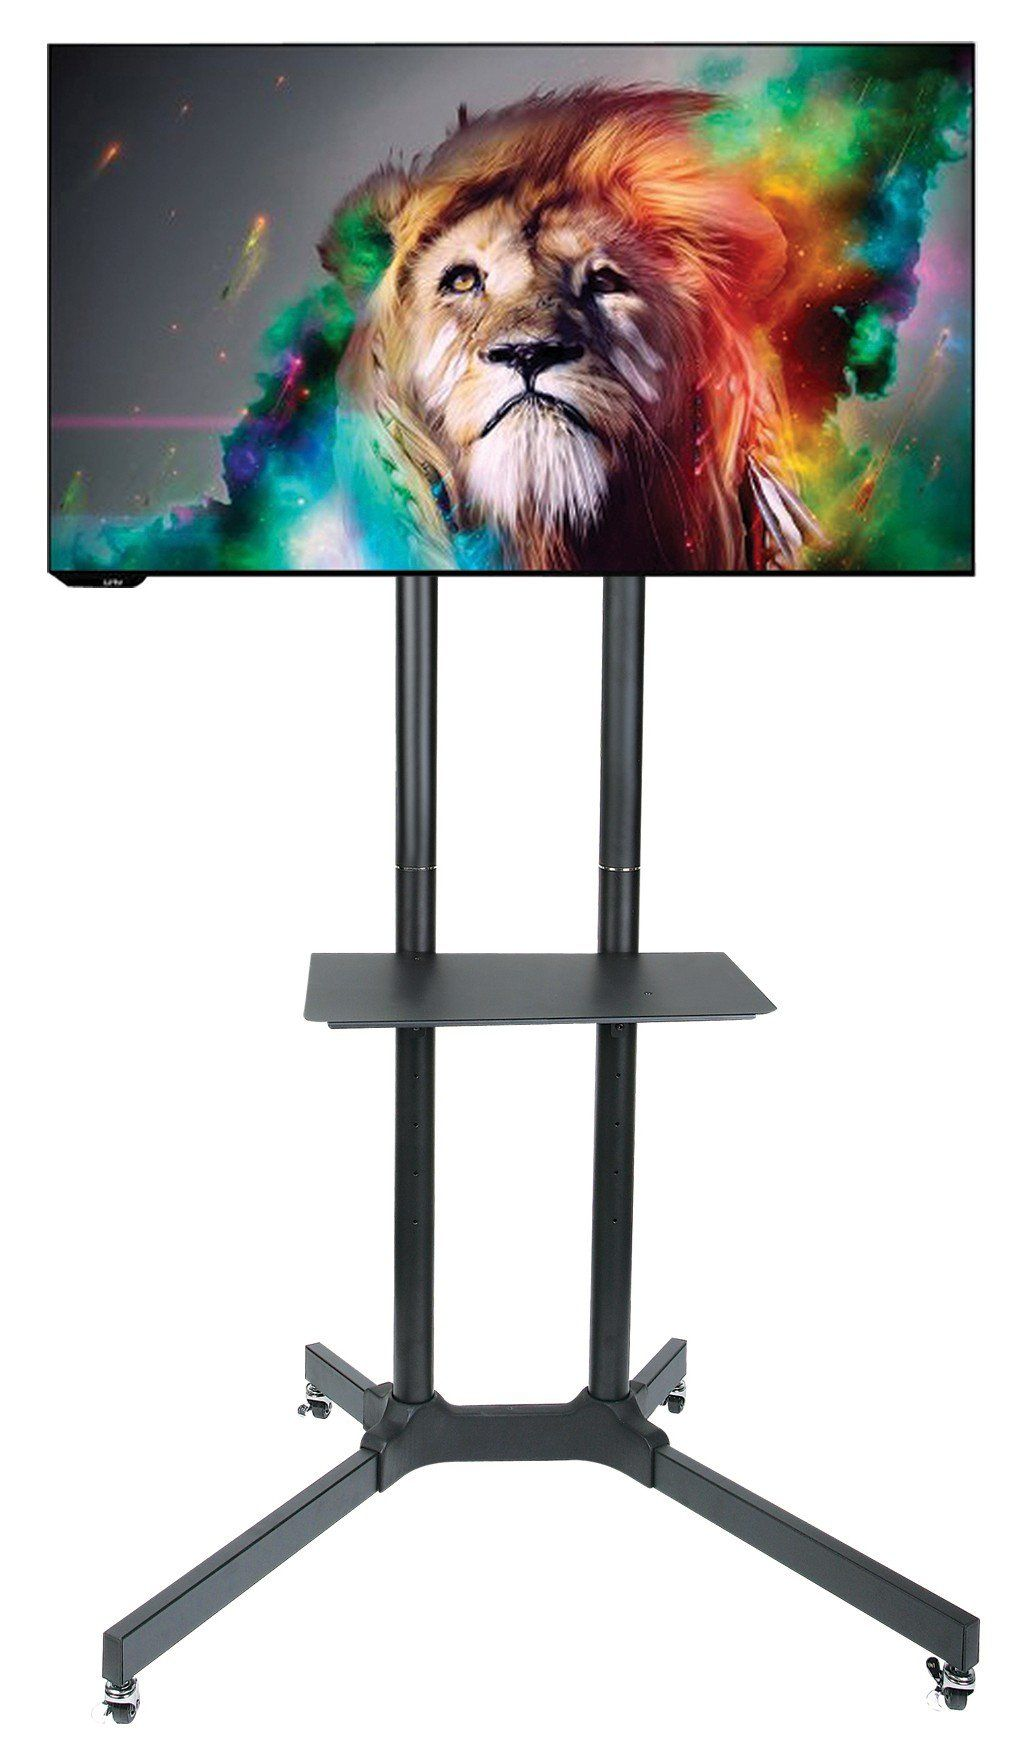 Husky Mount Mobile TV Stand with Wheels Heavy Duty Universal Rolling